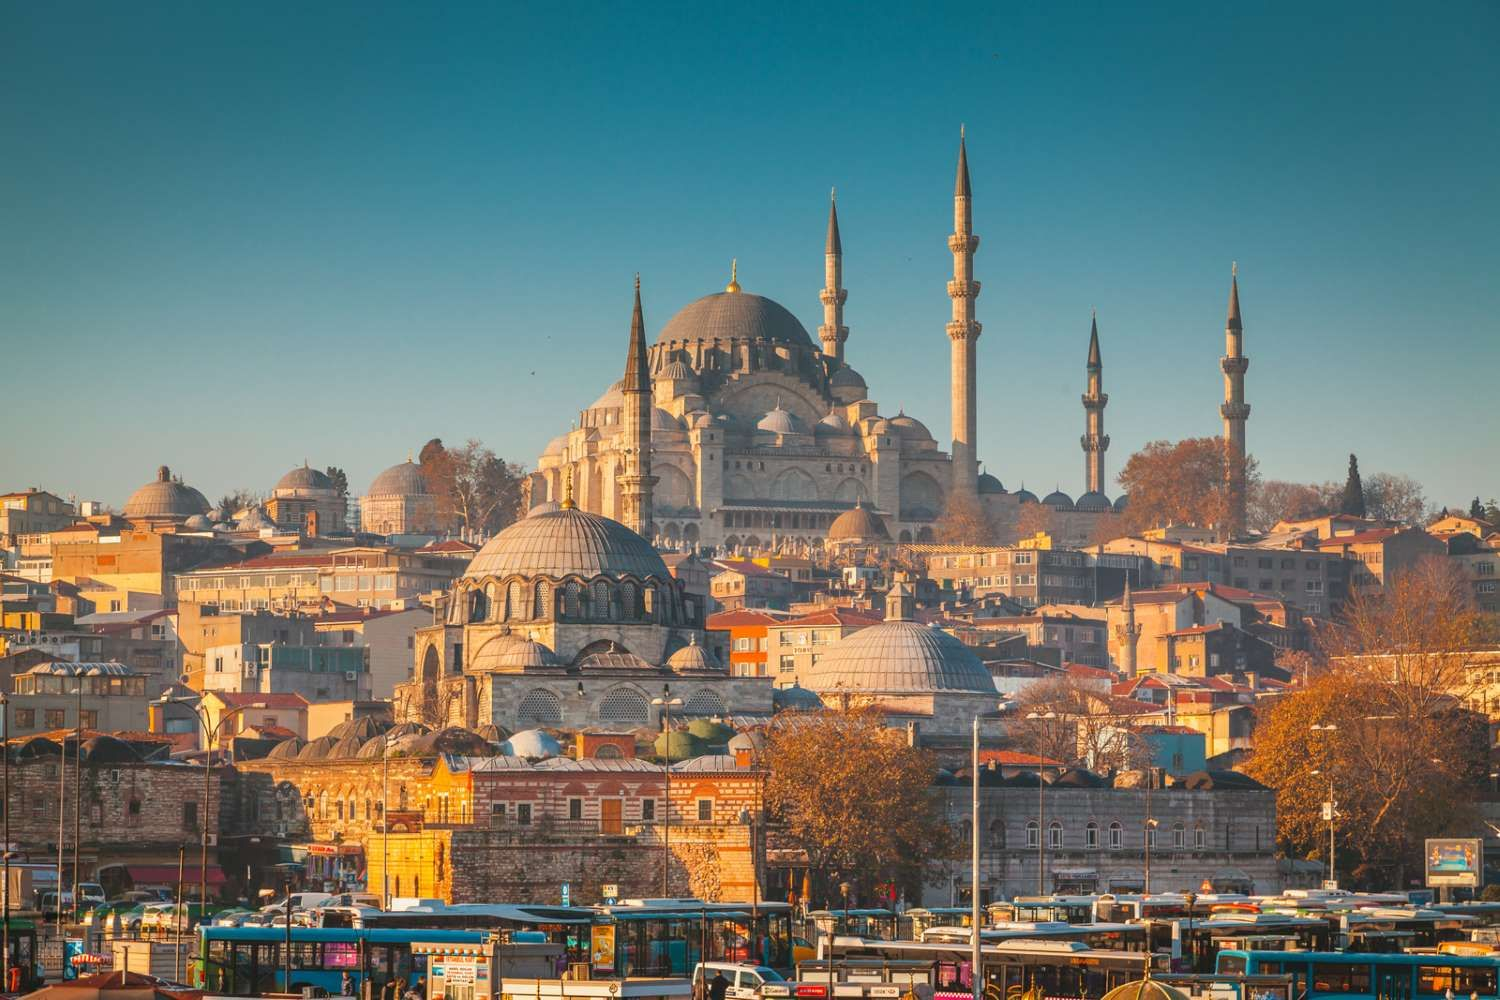 Istanbul Turkey  Shaoyang ZhouEyeEmGetty Images  Hot